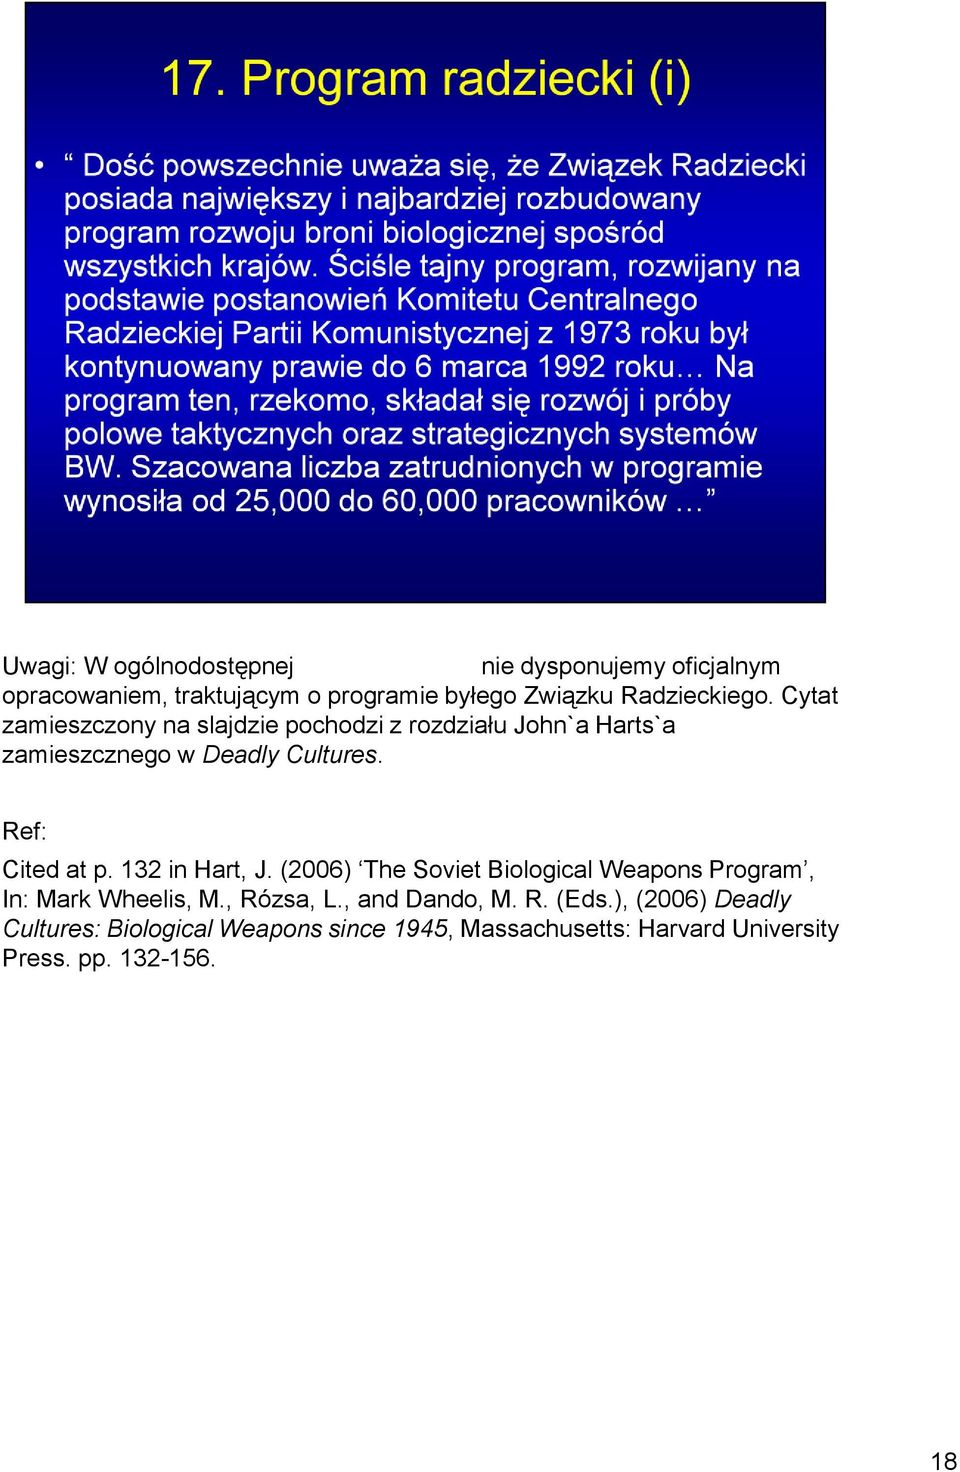 Ref: Cited at p. 132 in Hart, J. (2006) The Soviet Biological Weapons Program, In: Mark Wheelis, M., Rózsa, L.